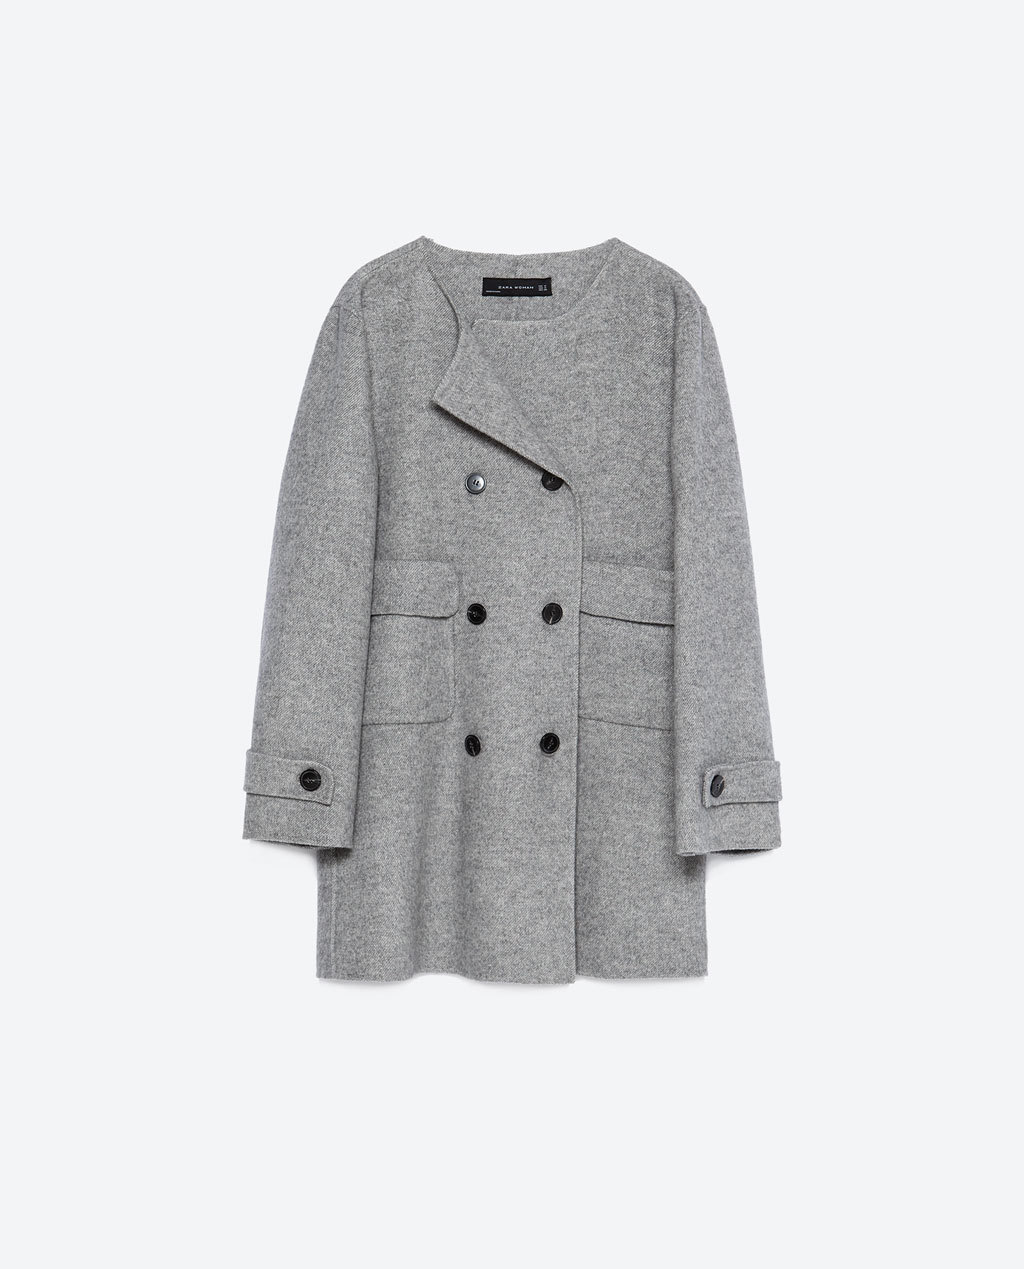 Hand Made Coat - pattern: plain; length: below the bottom; collar: round collar/collarless; style: double breasted; predominant colour: mid grey; occasions: casual; fit: straight cut (boxy); fibres: wool - mix; back detail: back vent/flap at back; sleeve length: long sleeve; sleeve style: standard; collar break: high; pattern type: fabric; texture group: woven bulky/heavy; season: a/w 2015